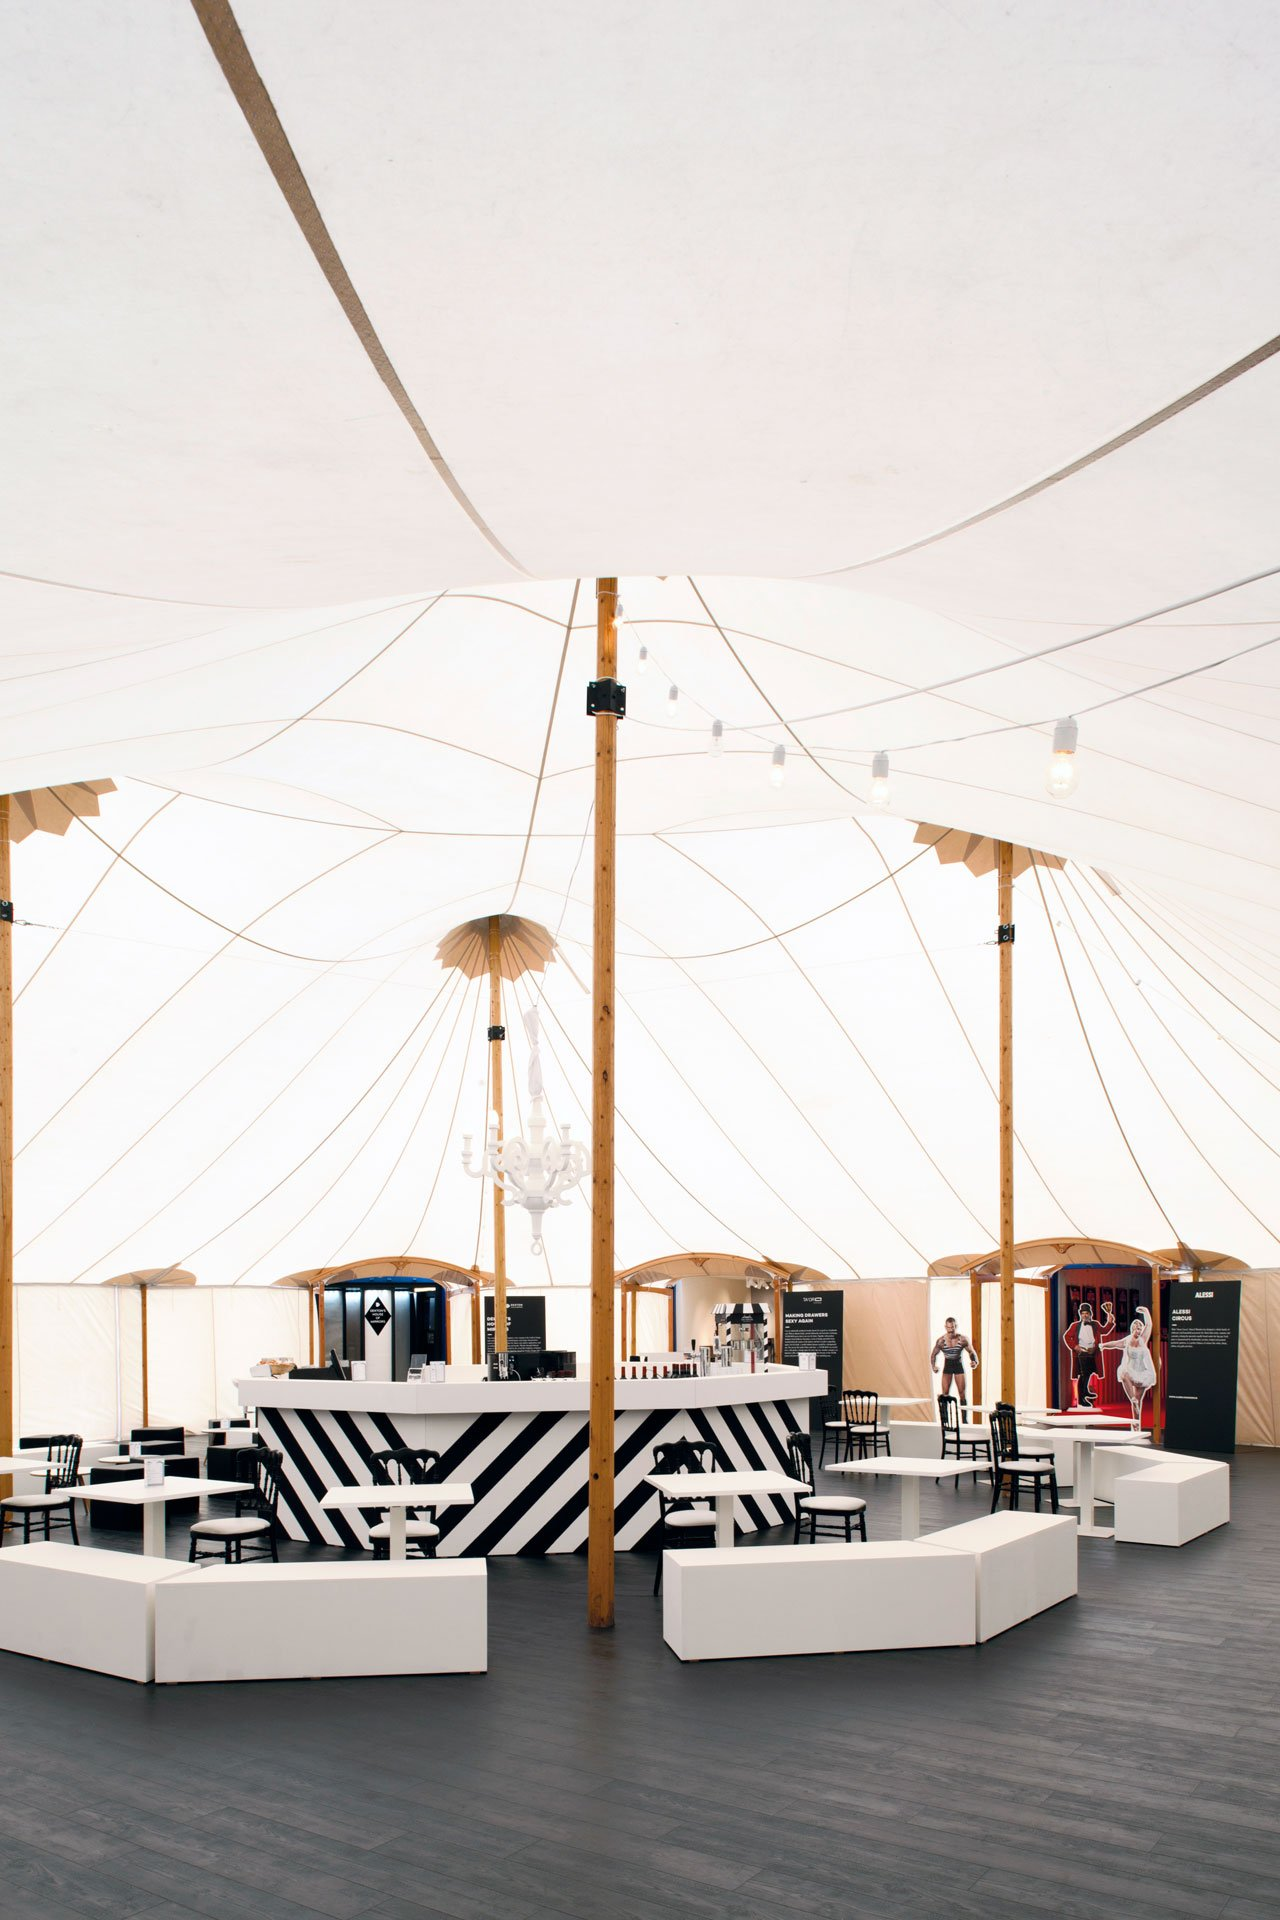 The Circusby King George agency: A pop-up installation connected to the fair where 8 design brands showcase a specific concept in containers in a stylish tent.